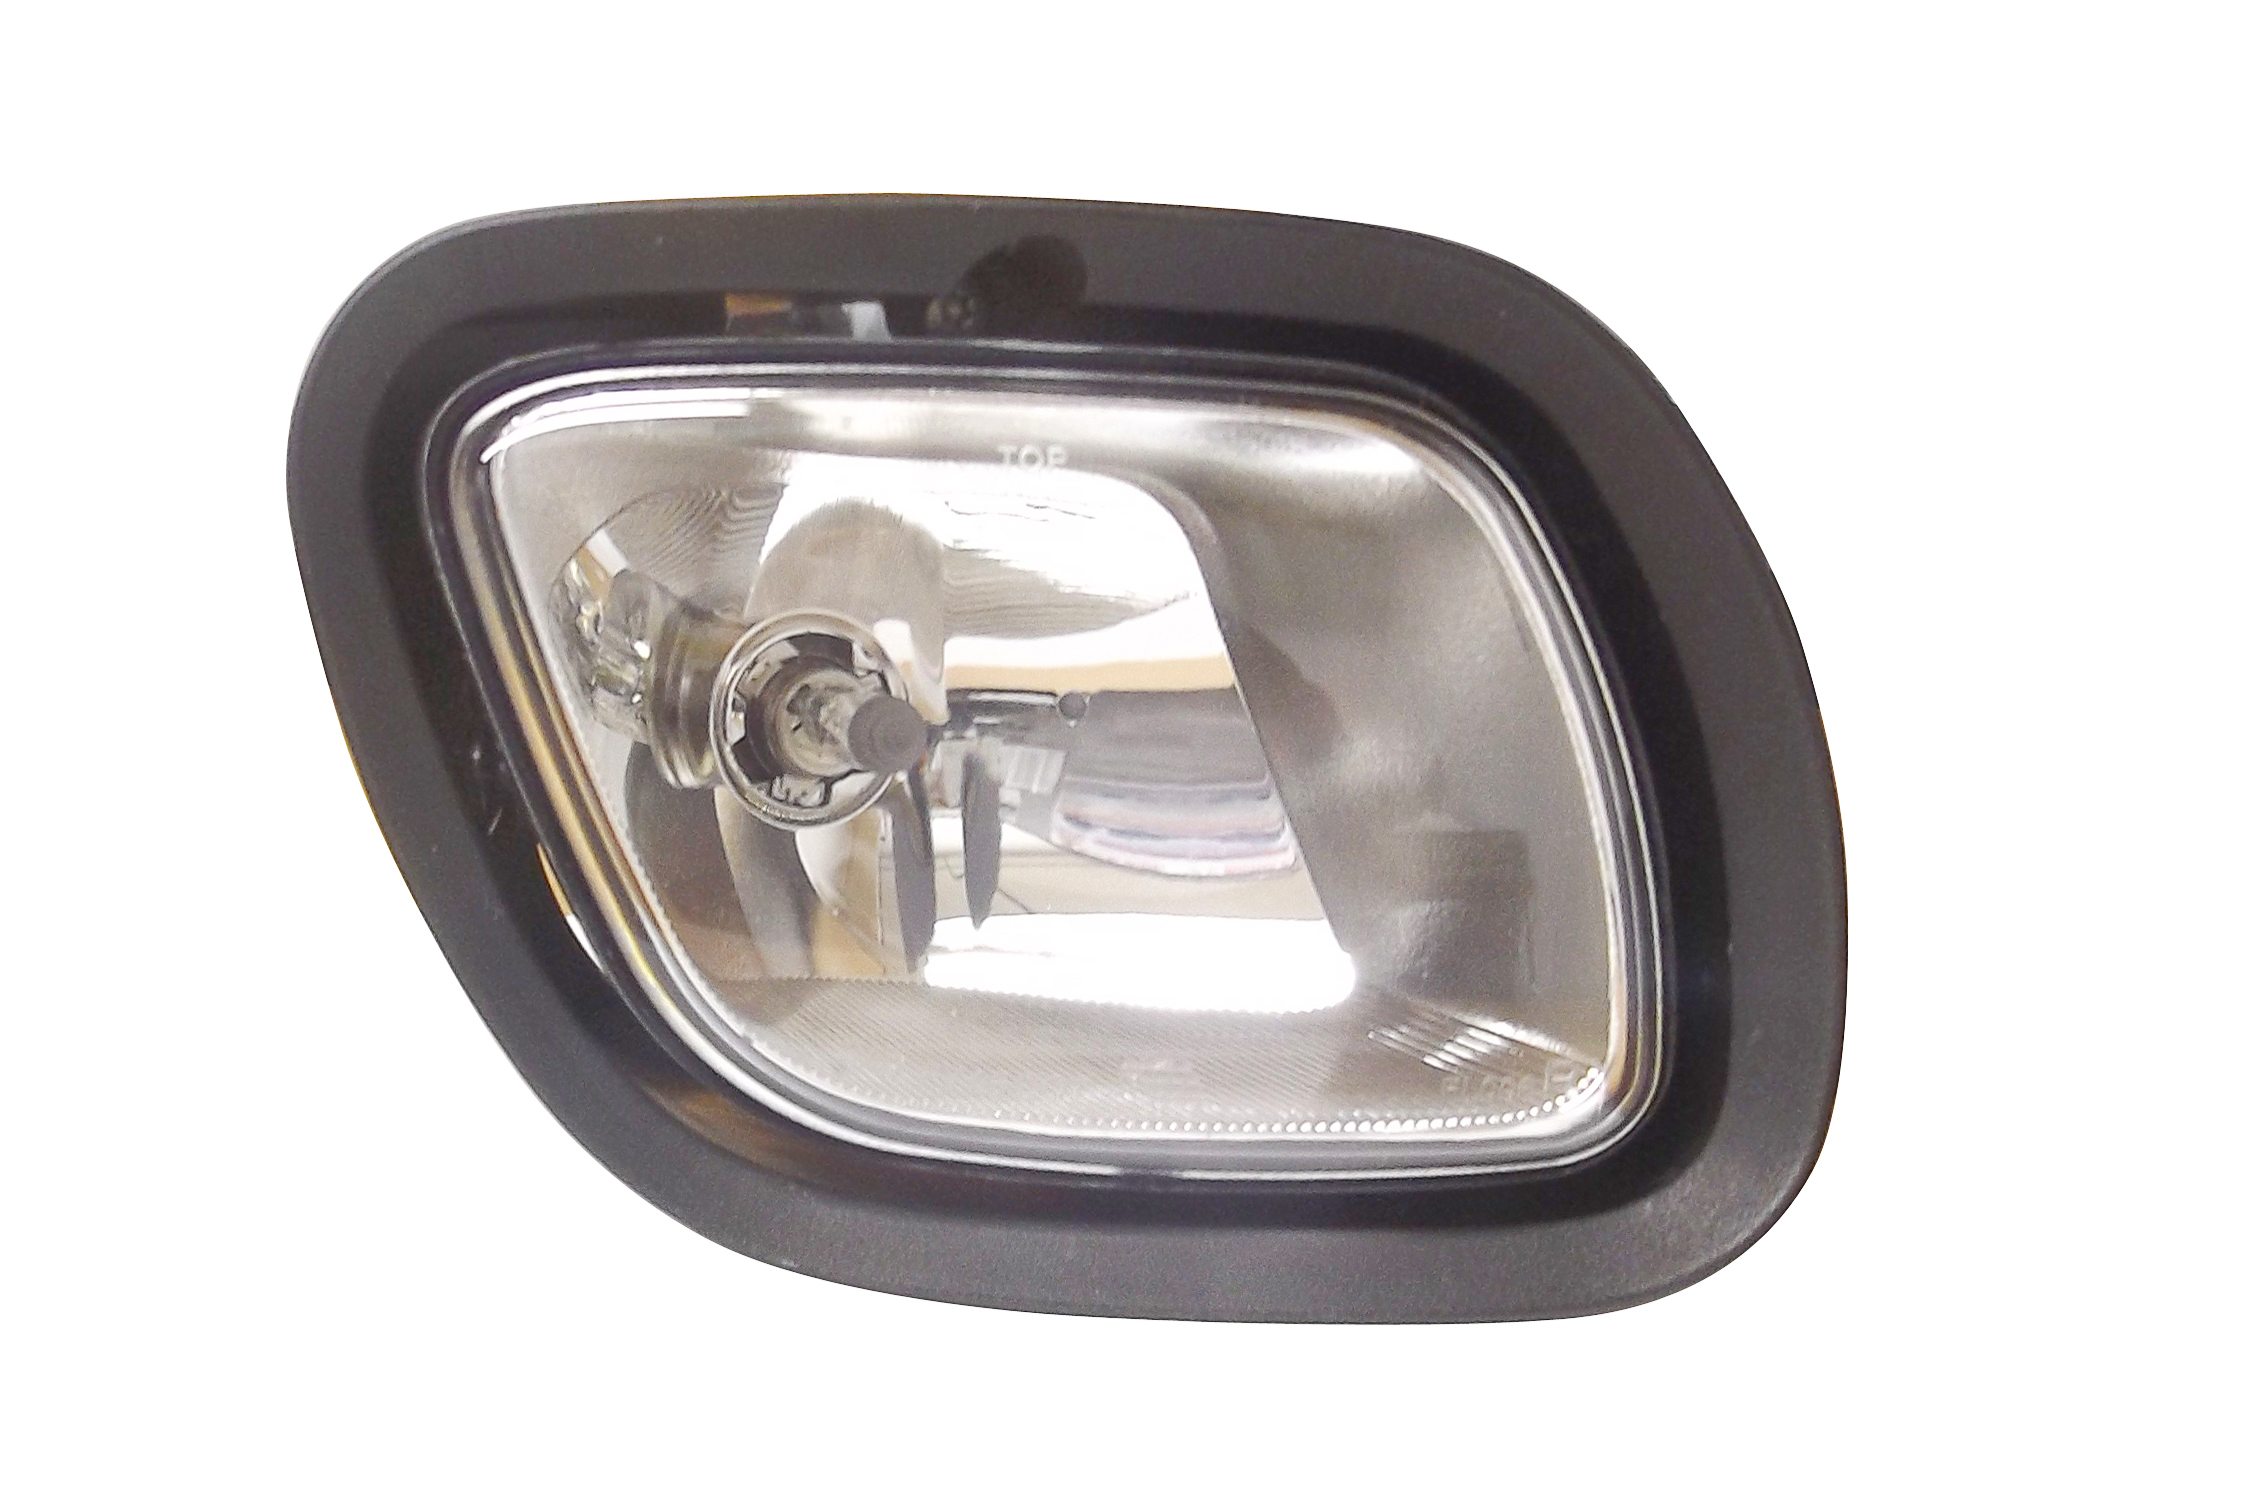 2008 to 2014 Right side Freightliner Cascadia foglight - front view